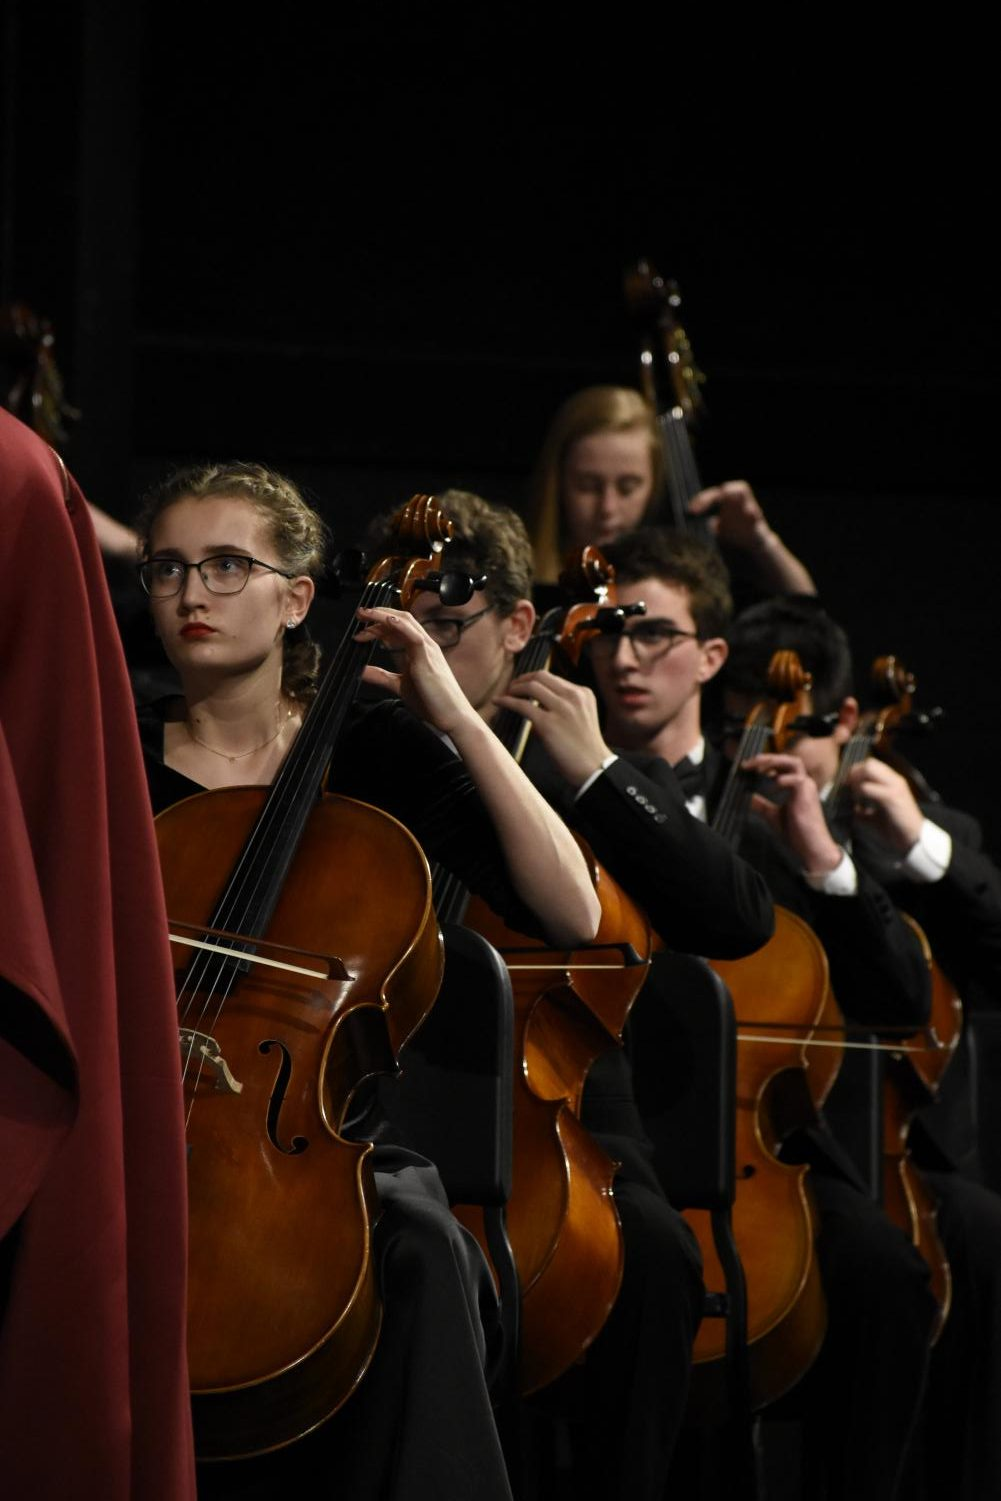 Looking+up+at+the+conductor%2C+Abby+Dickinson%2C+junior%2C+plays+her+cello+at+the+orchestra+concert+Dec.+6.+